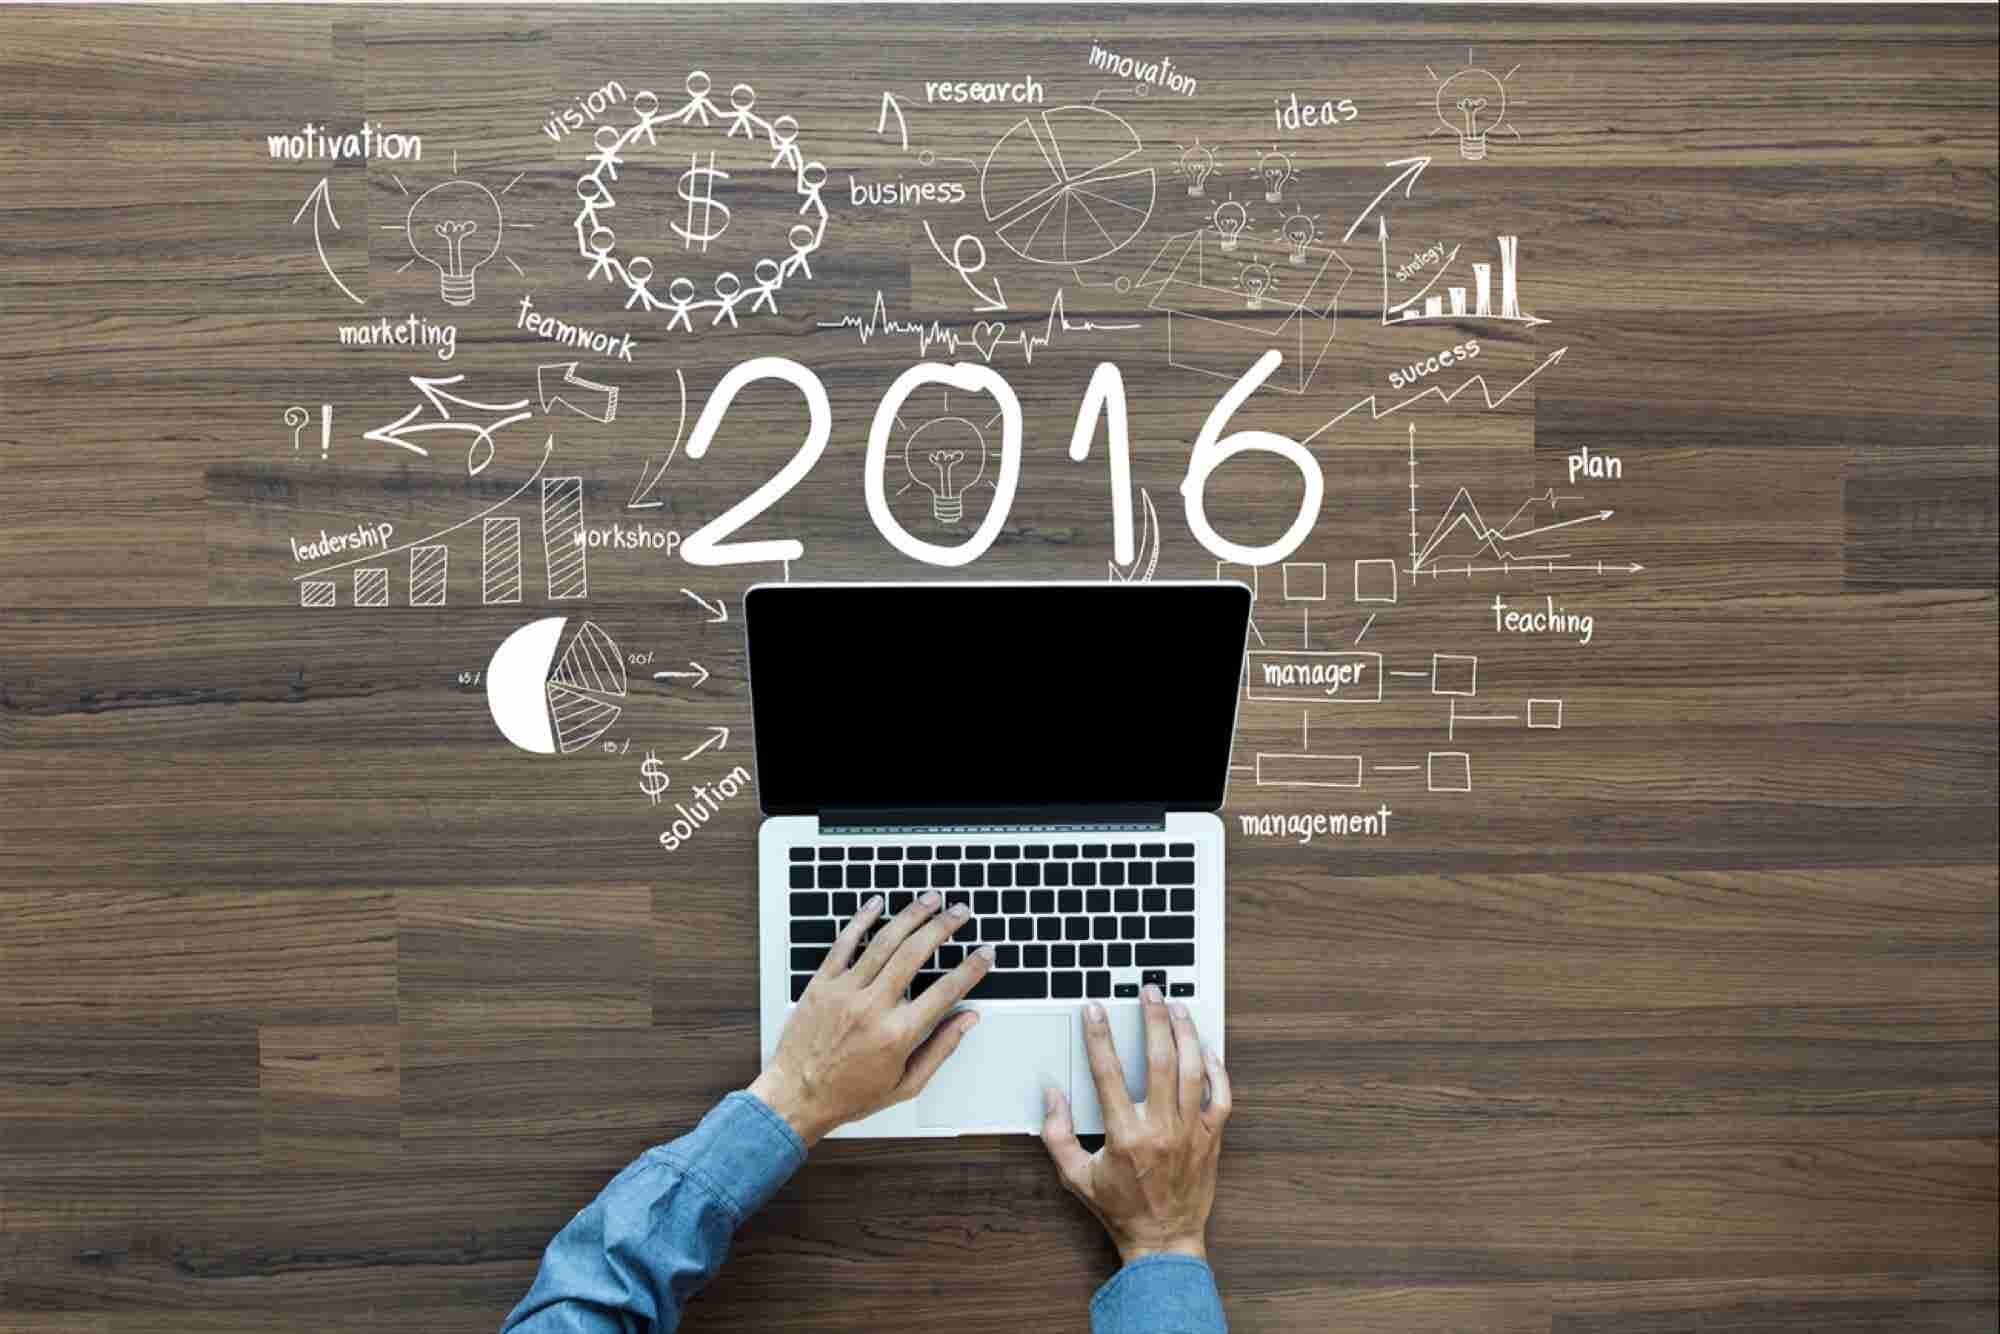 10 Digital Marketing Predictions To Watch Out For In 2016